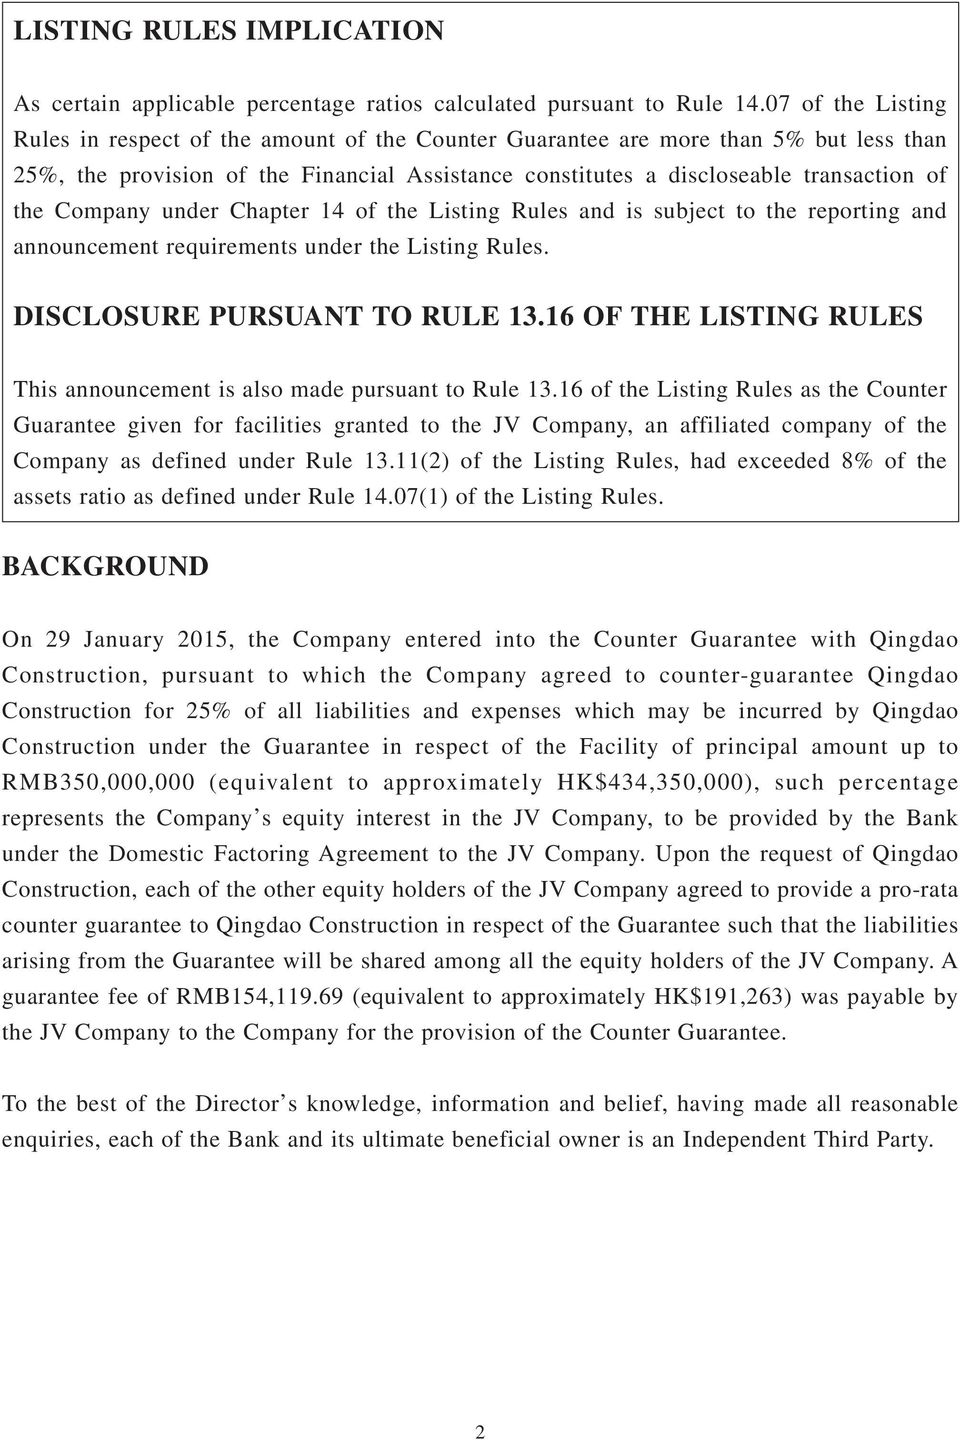 Company under Chapter 14 of the Listing Rules and is subject to the reporting and announcement requirements under the Listing Rules. DISCLOSURE PURSUANT TO RULE 13.